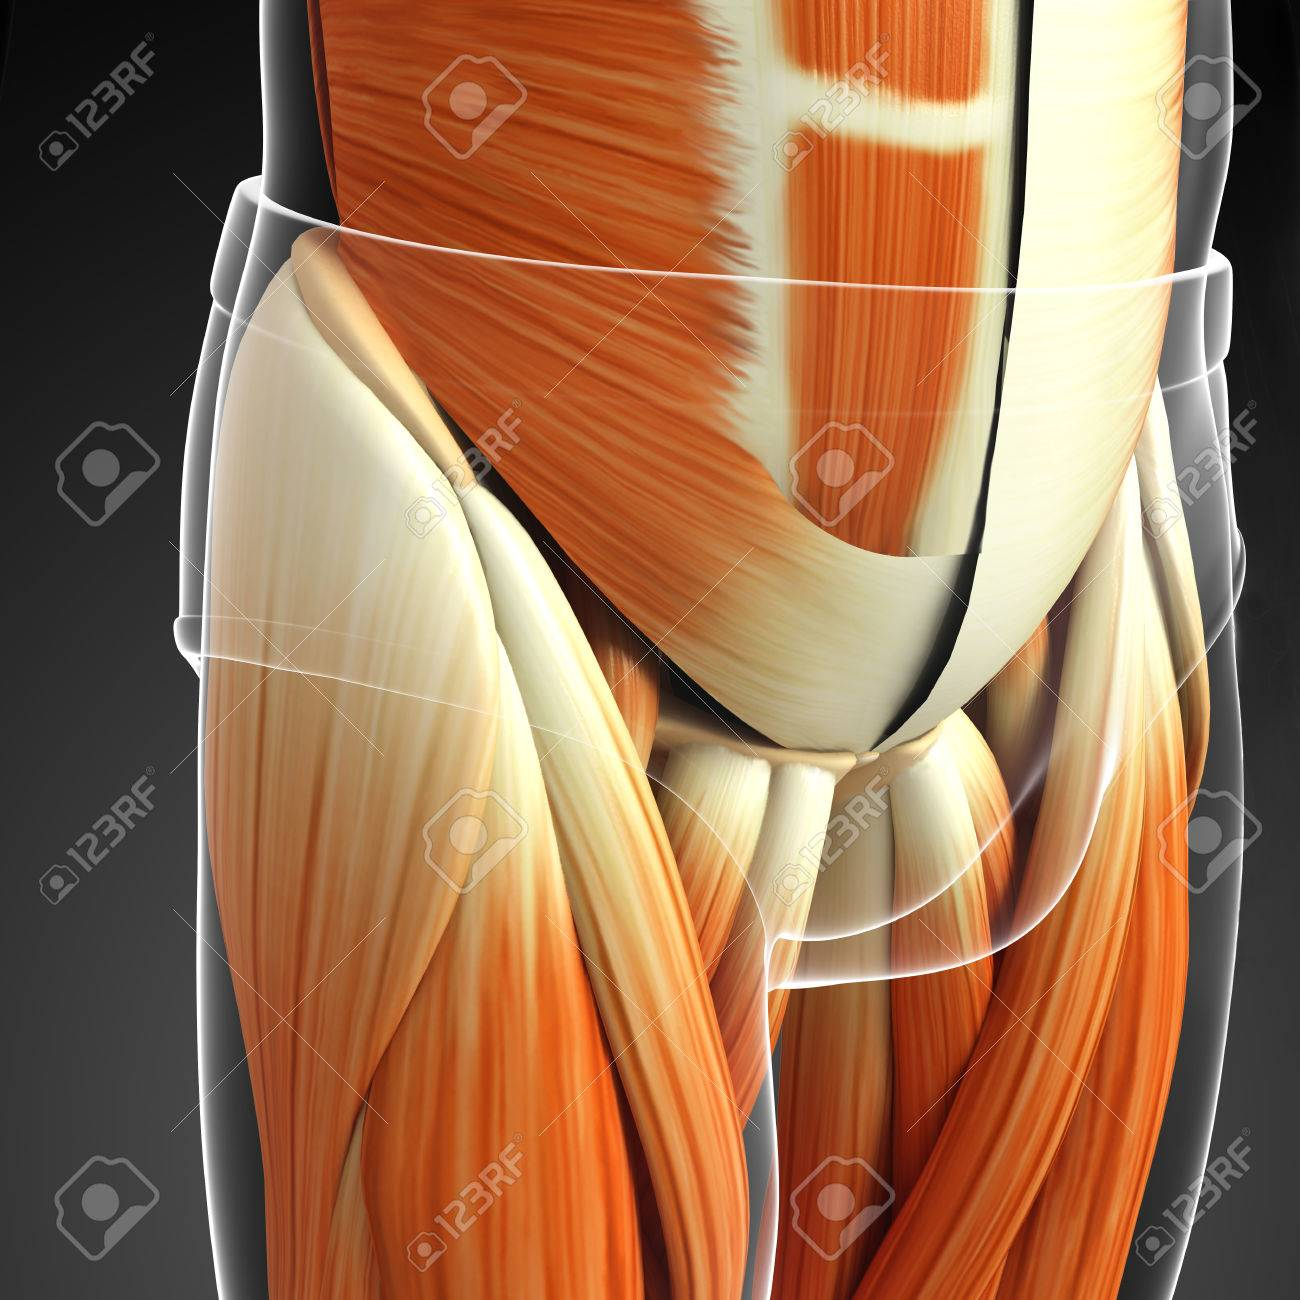 3d Rendered Illustration Of Pelvic Muscles Anatomy Stock Photo